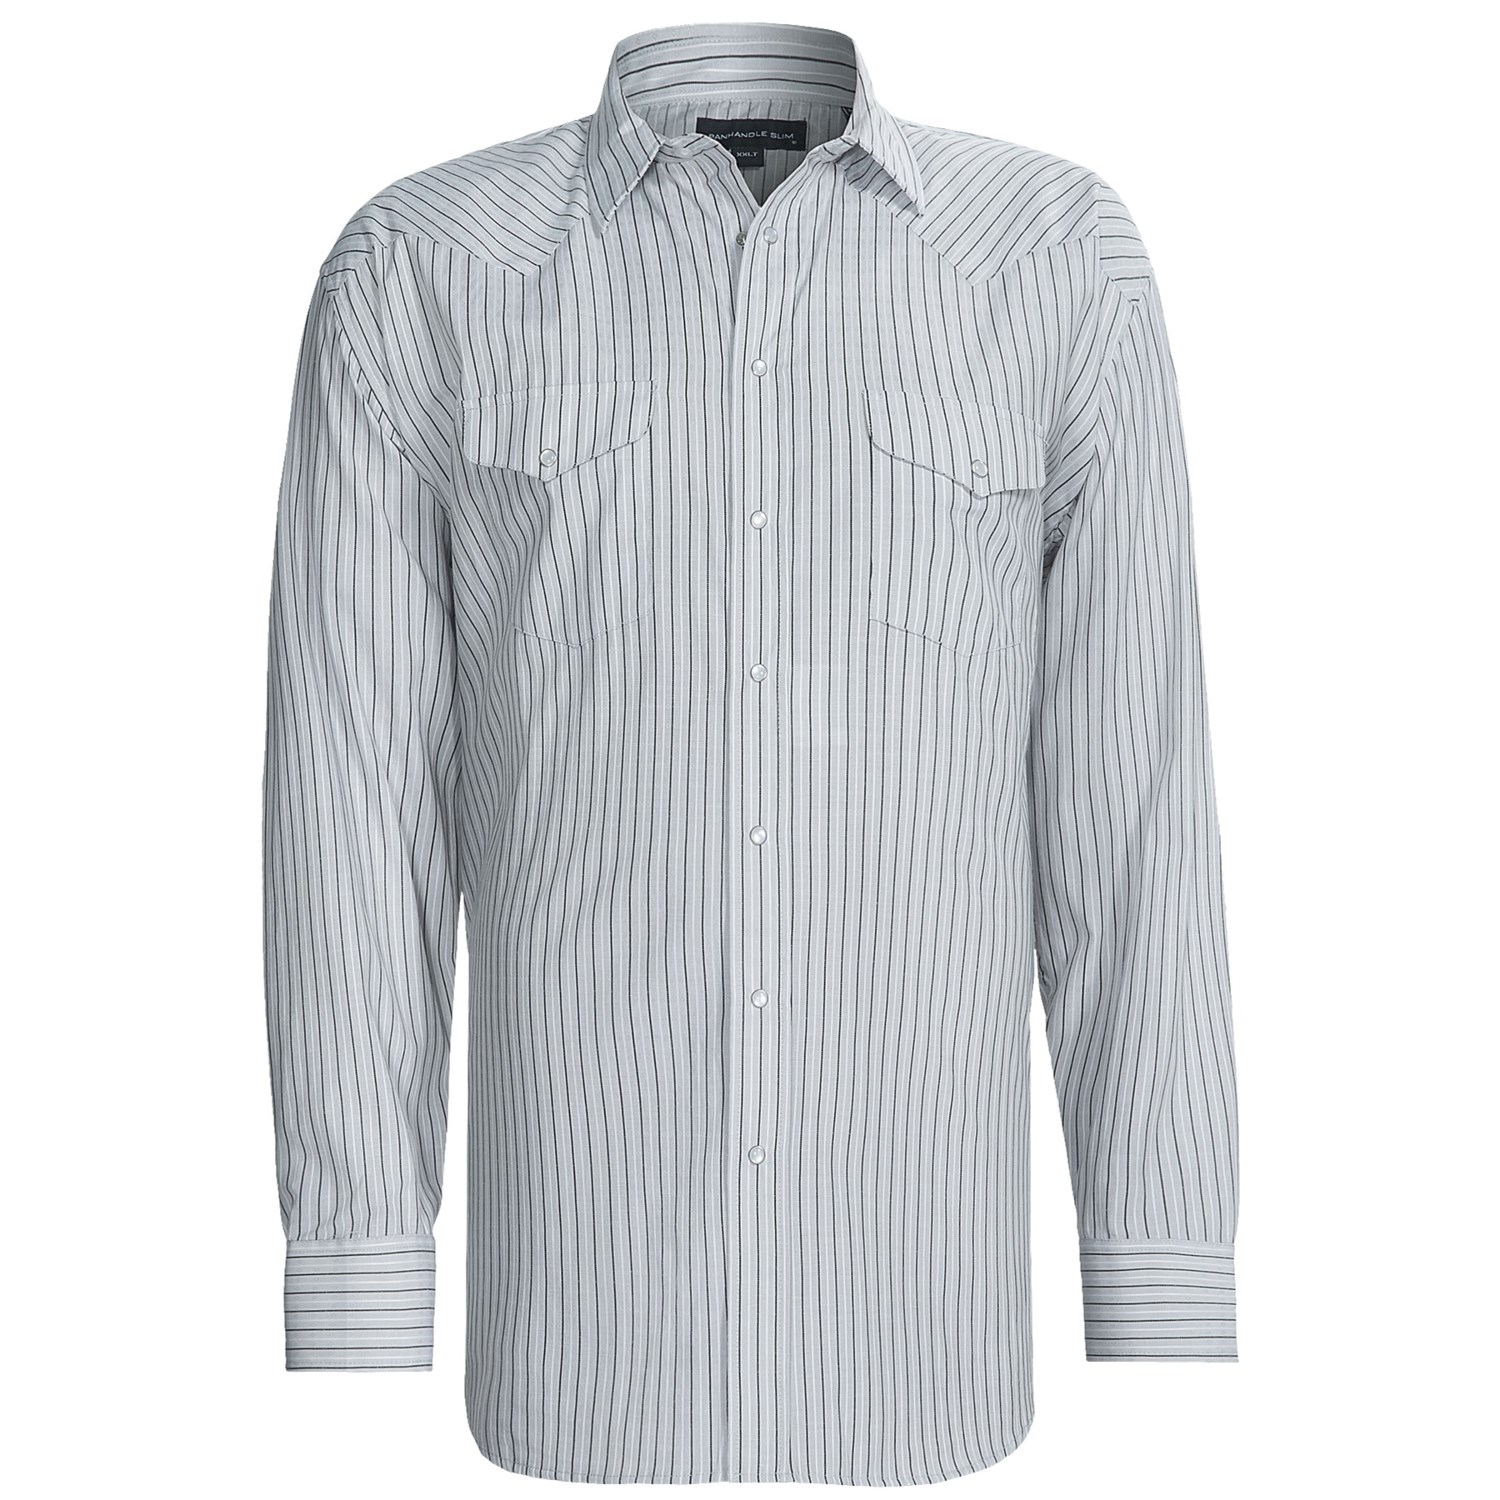 Panhandle slim satin stripe dress shirt snap front long for Slim and tall shirts